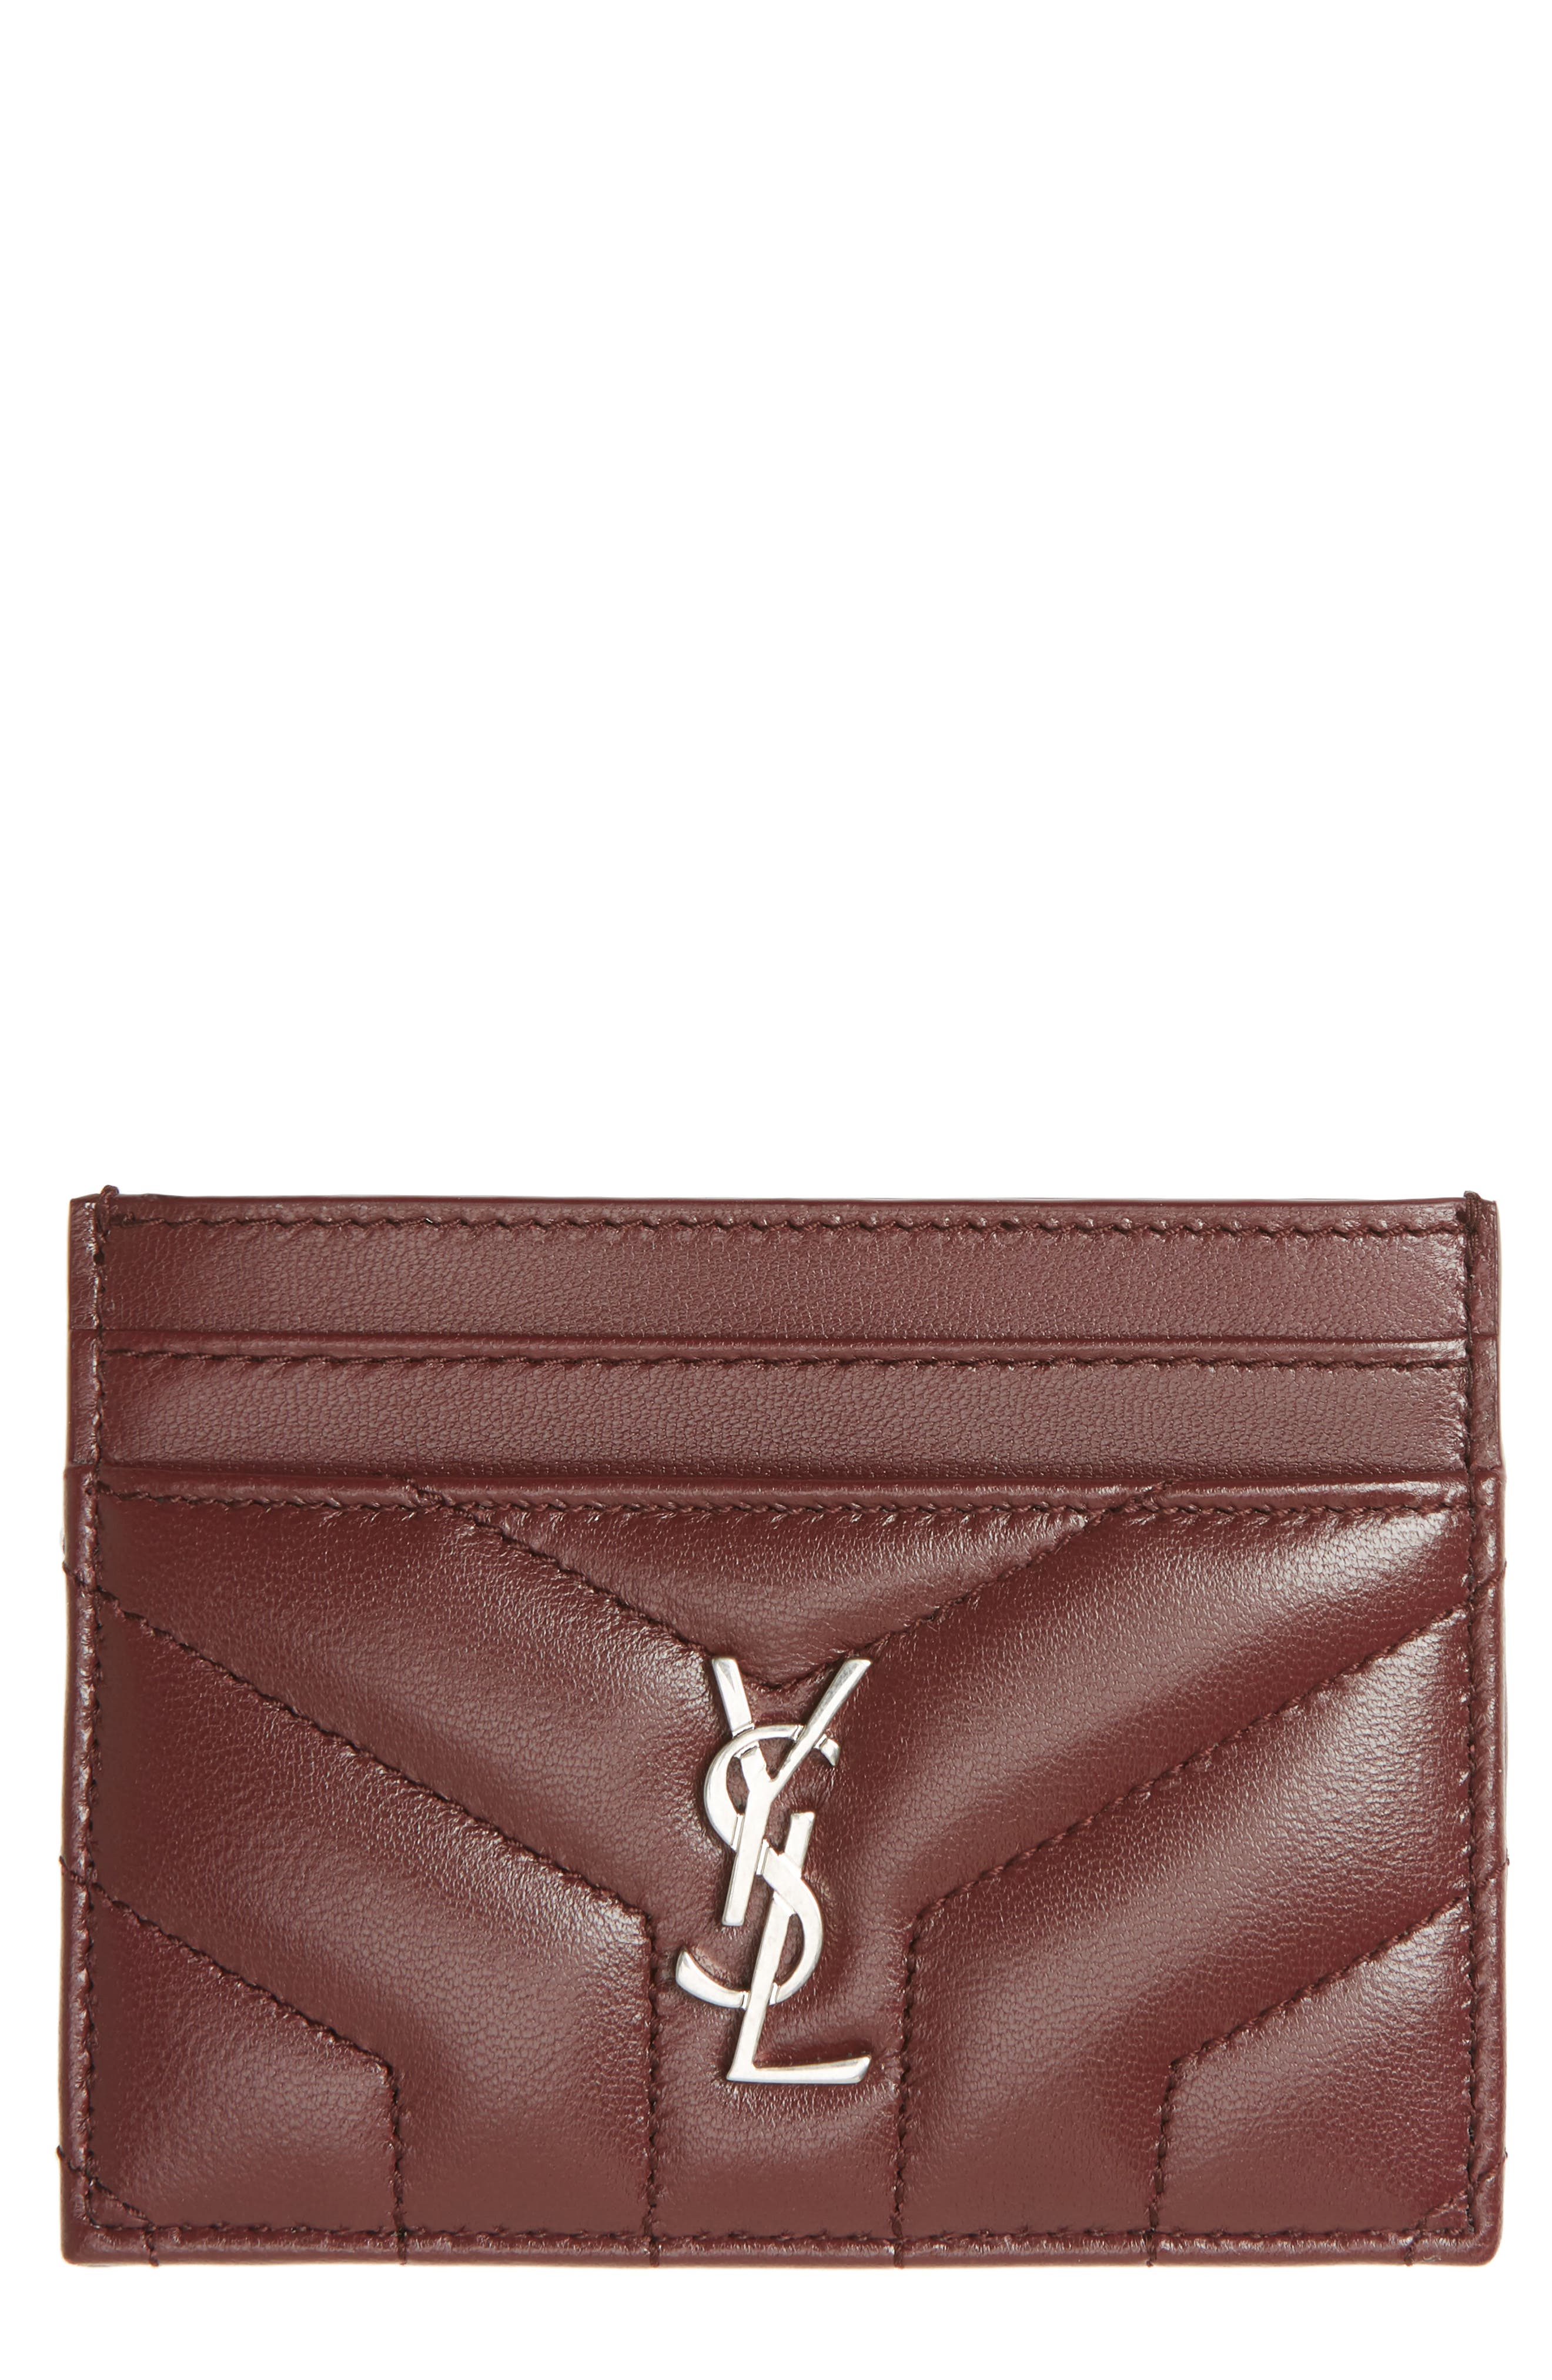 Loulou Monogram Quilted Leather Credit Card Case,                             Main thumbnail 1, color,                             Rouge Legion